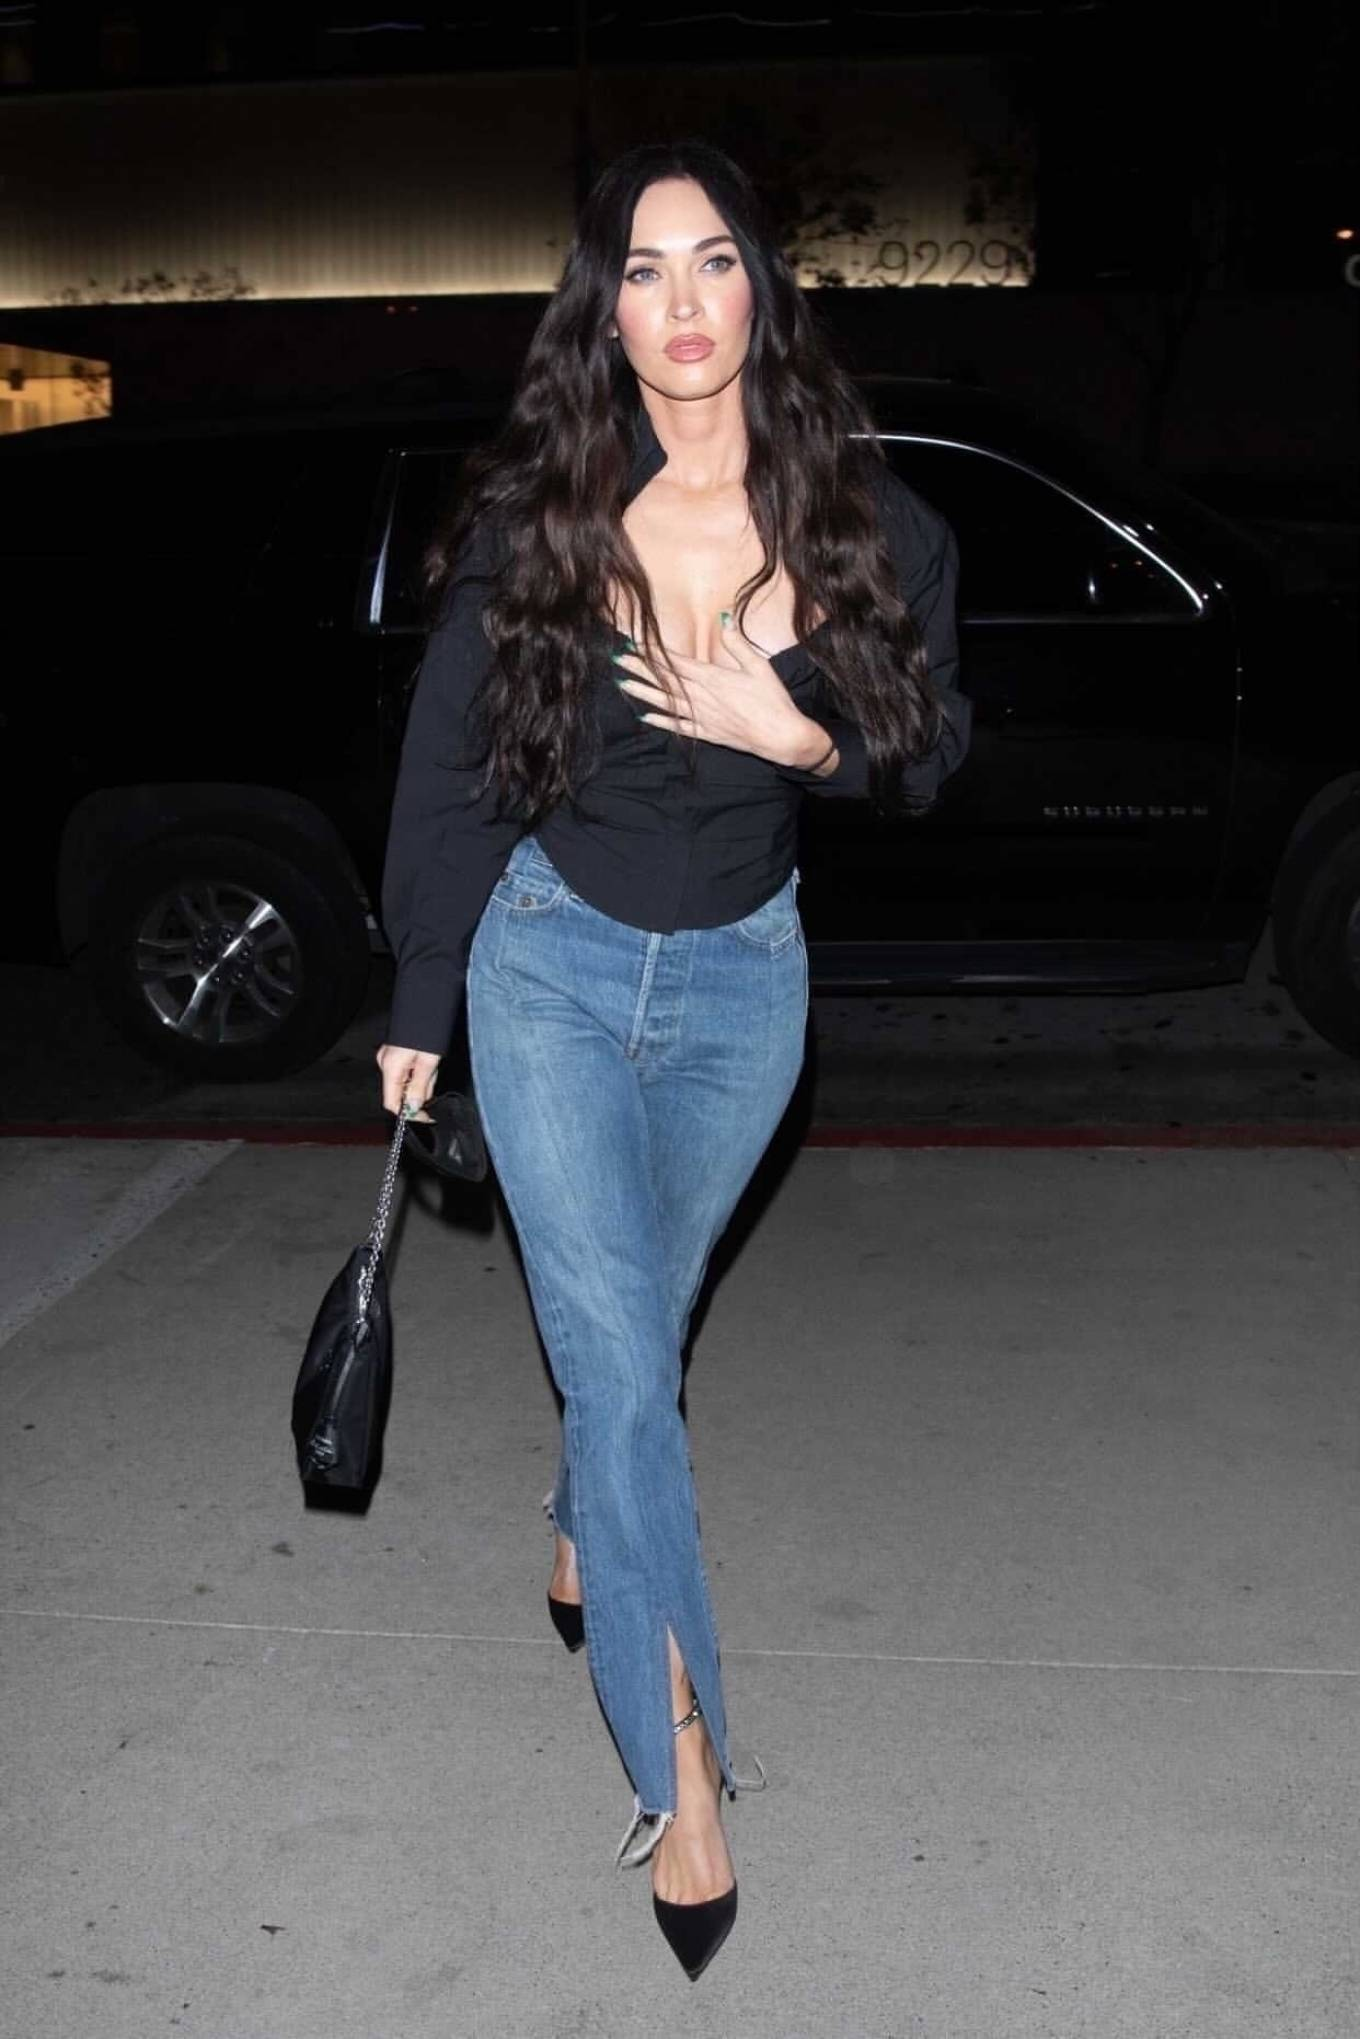 Megan Fox 2021 : Megan Fox – Out alone for dinner in West Hollywood-10